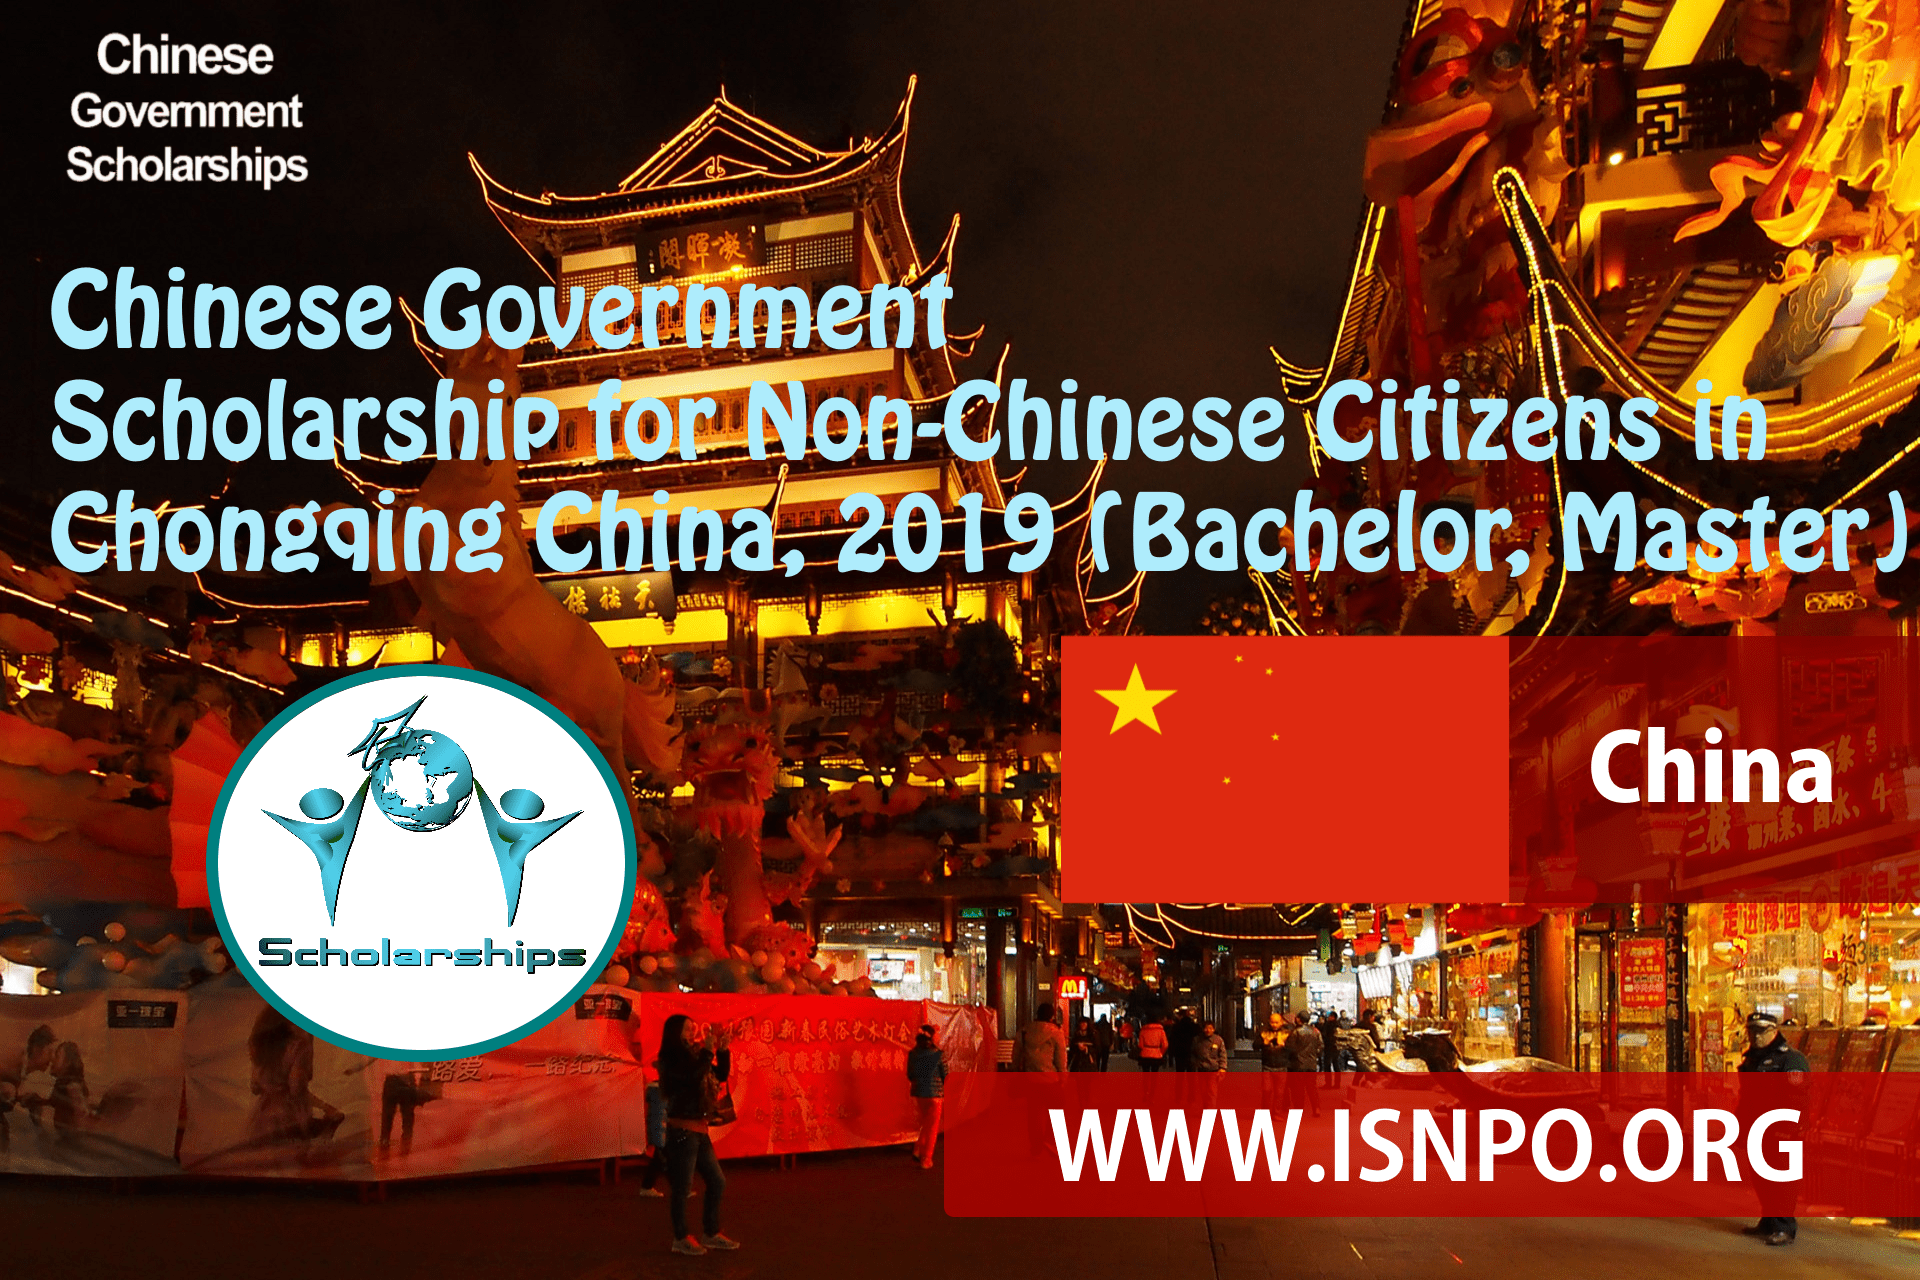 Chinese Federal Government Scholarship for Non-Chinese People in Chongqing China, 2019